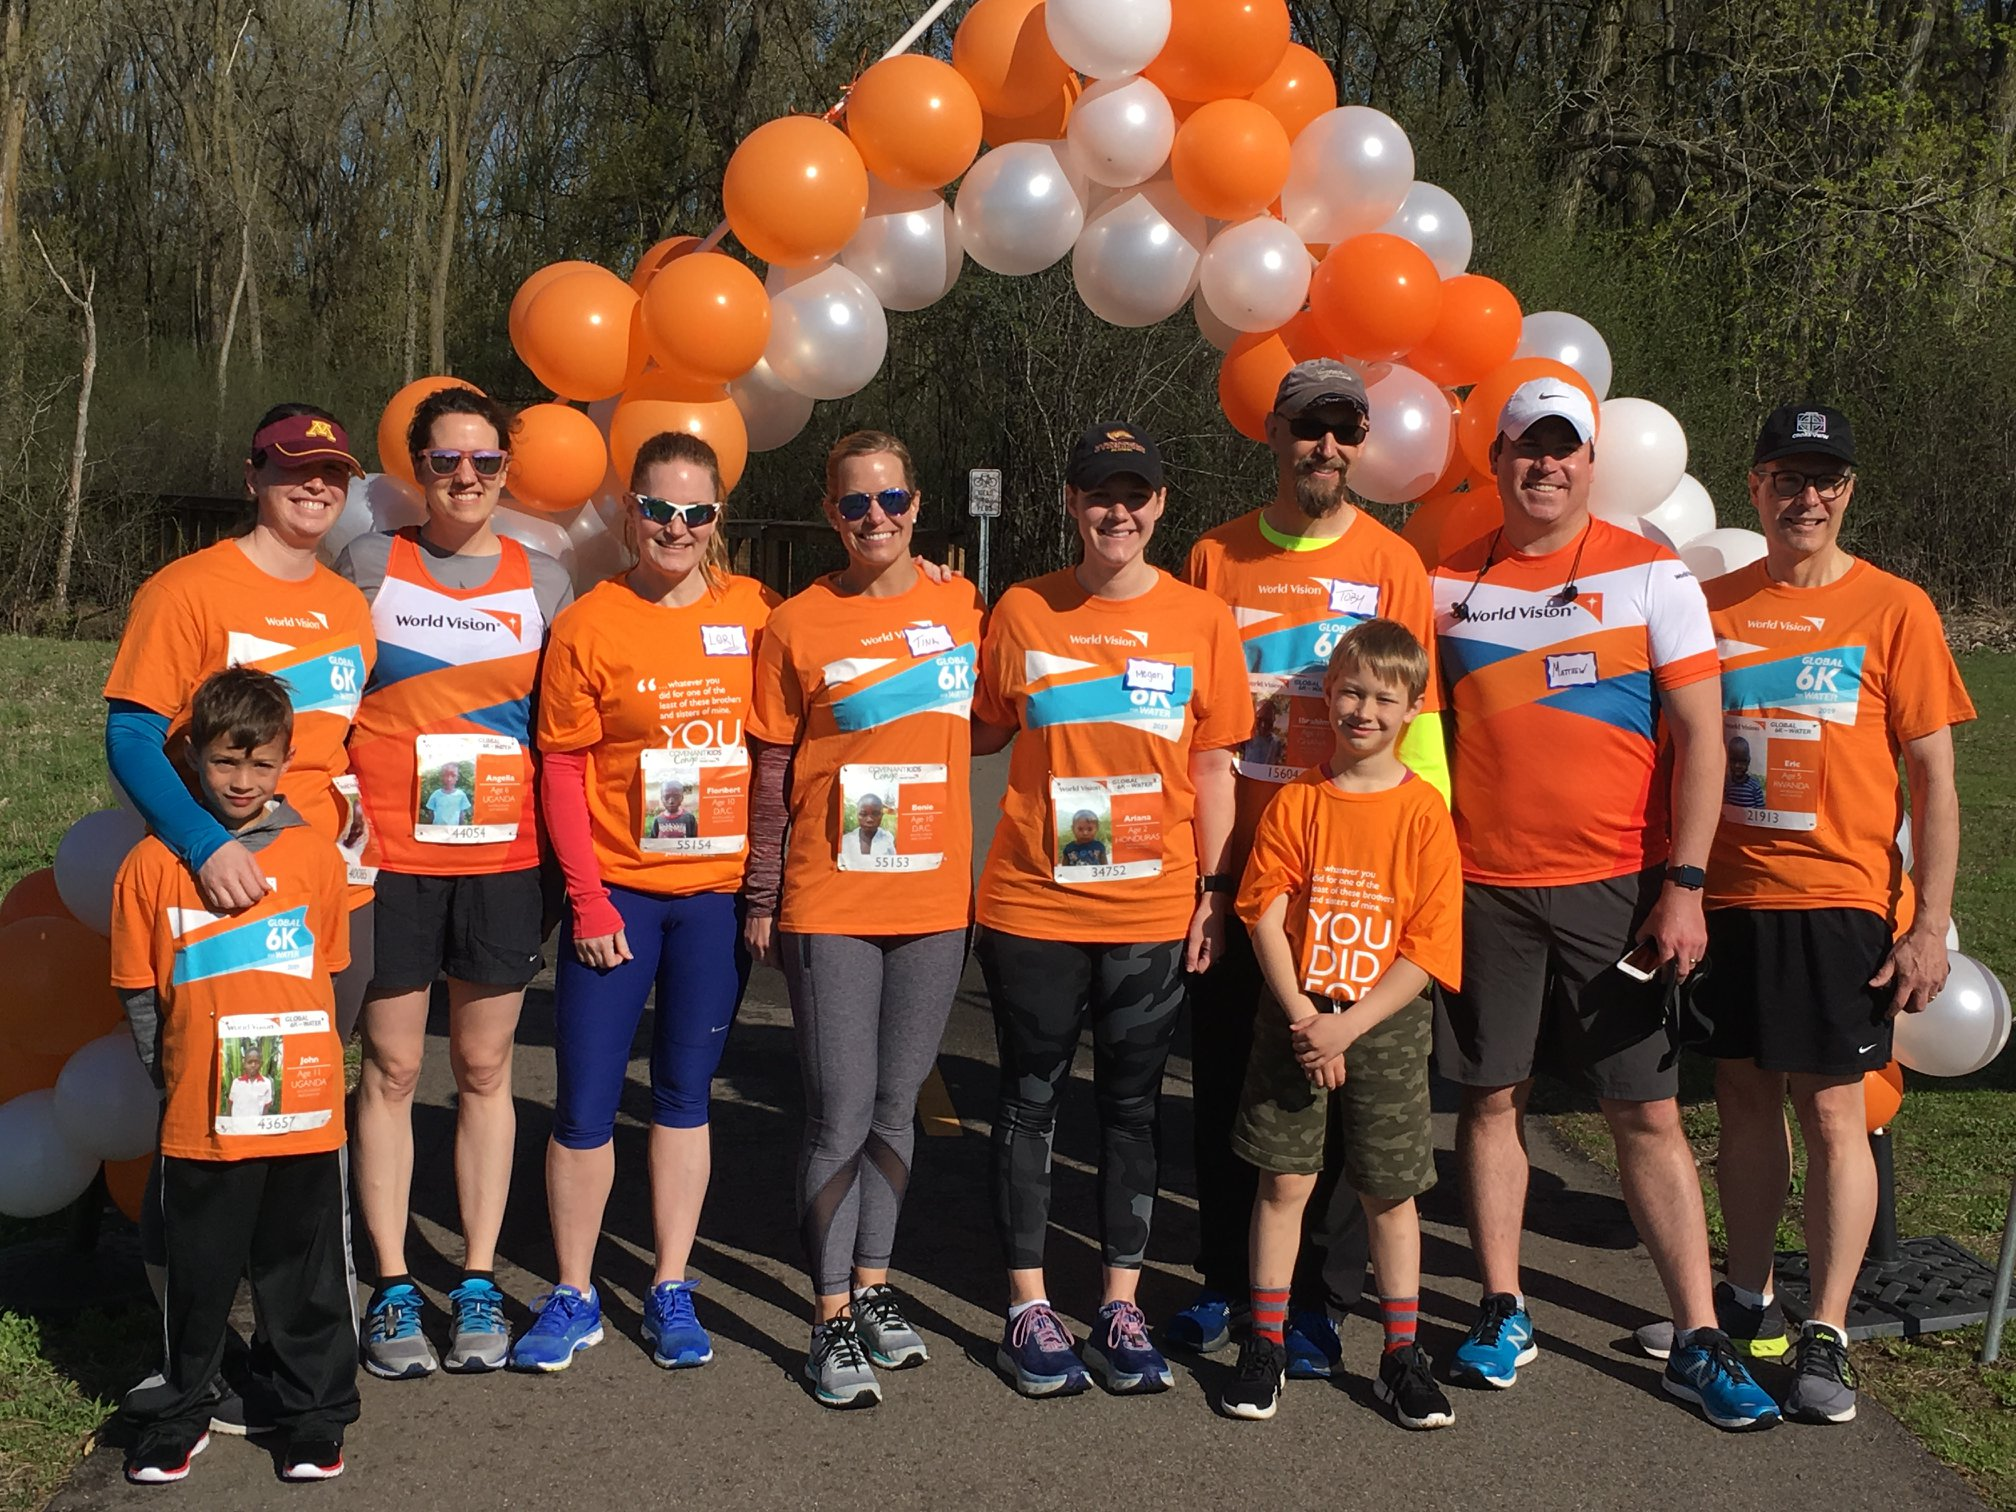 Cross View's Team World Vision runners